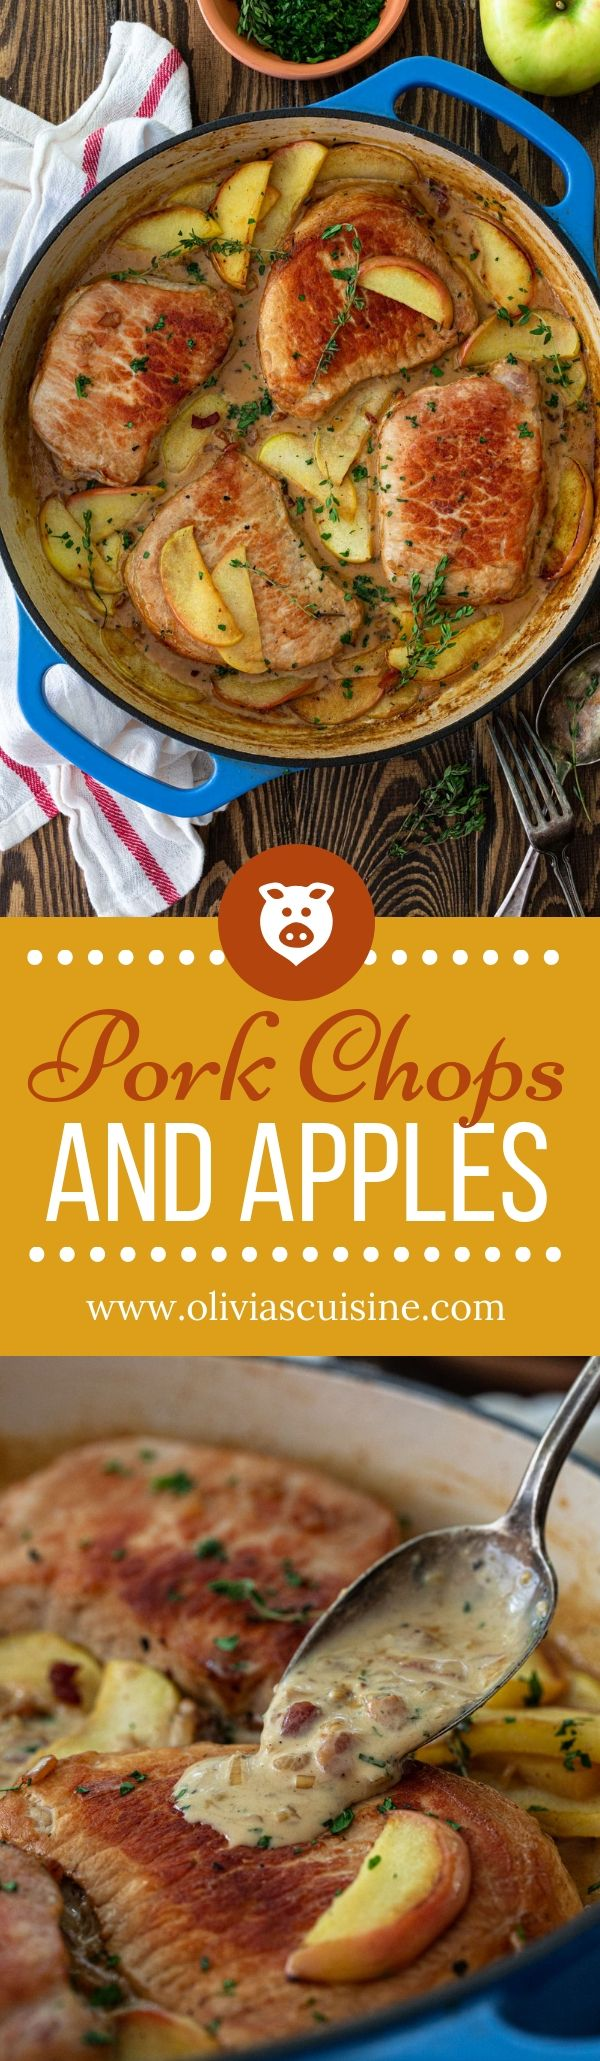 Pork Chops and Apples with a Creamy Bacon Bourbon Sauce |  |These delicious Pork Chops and Apples m